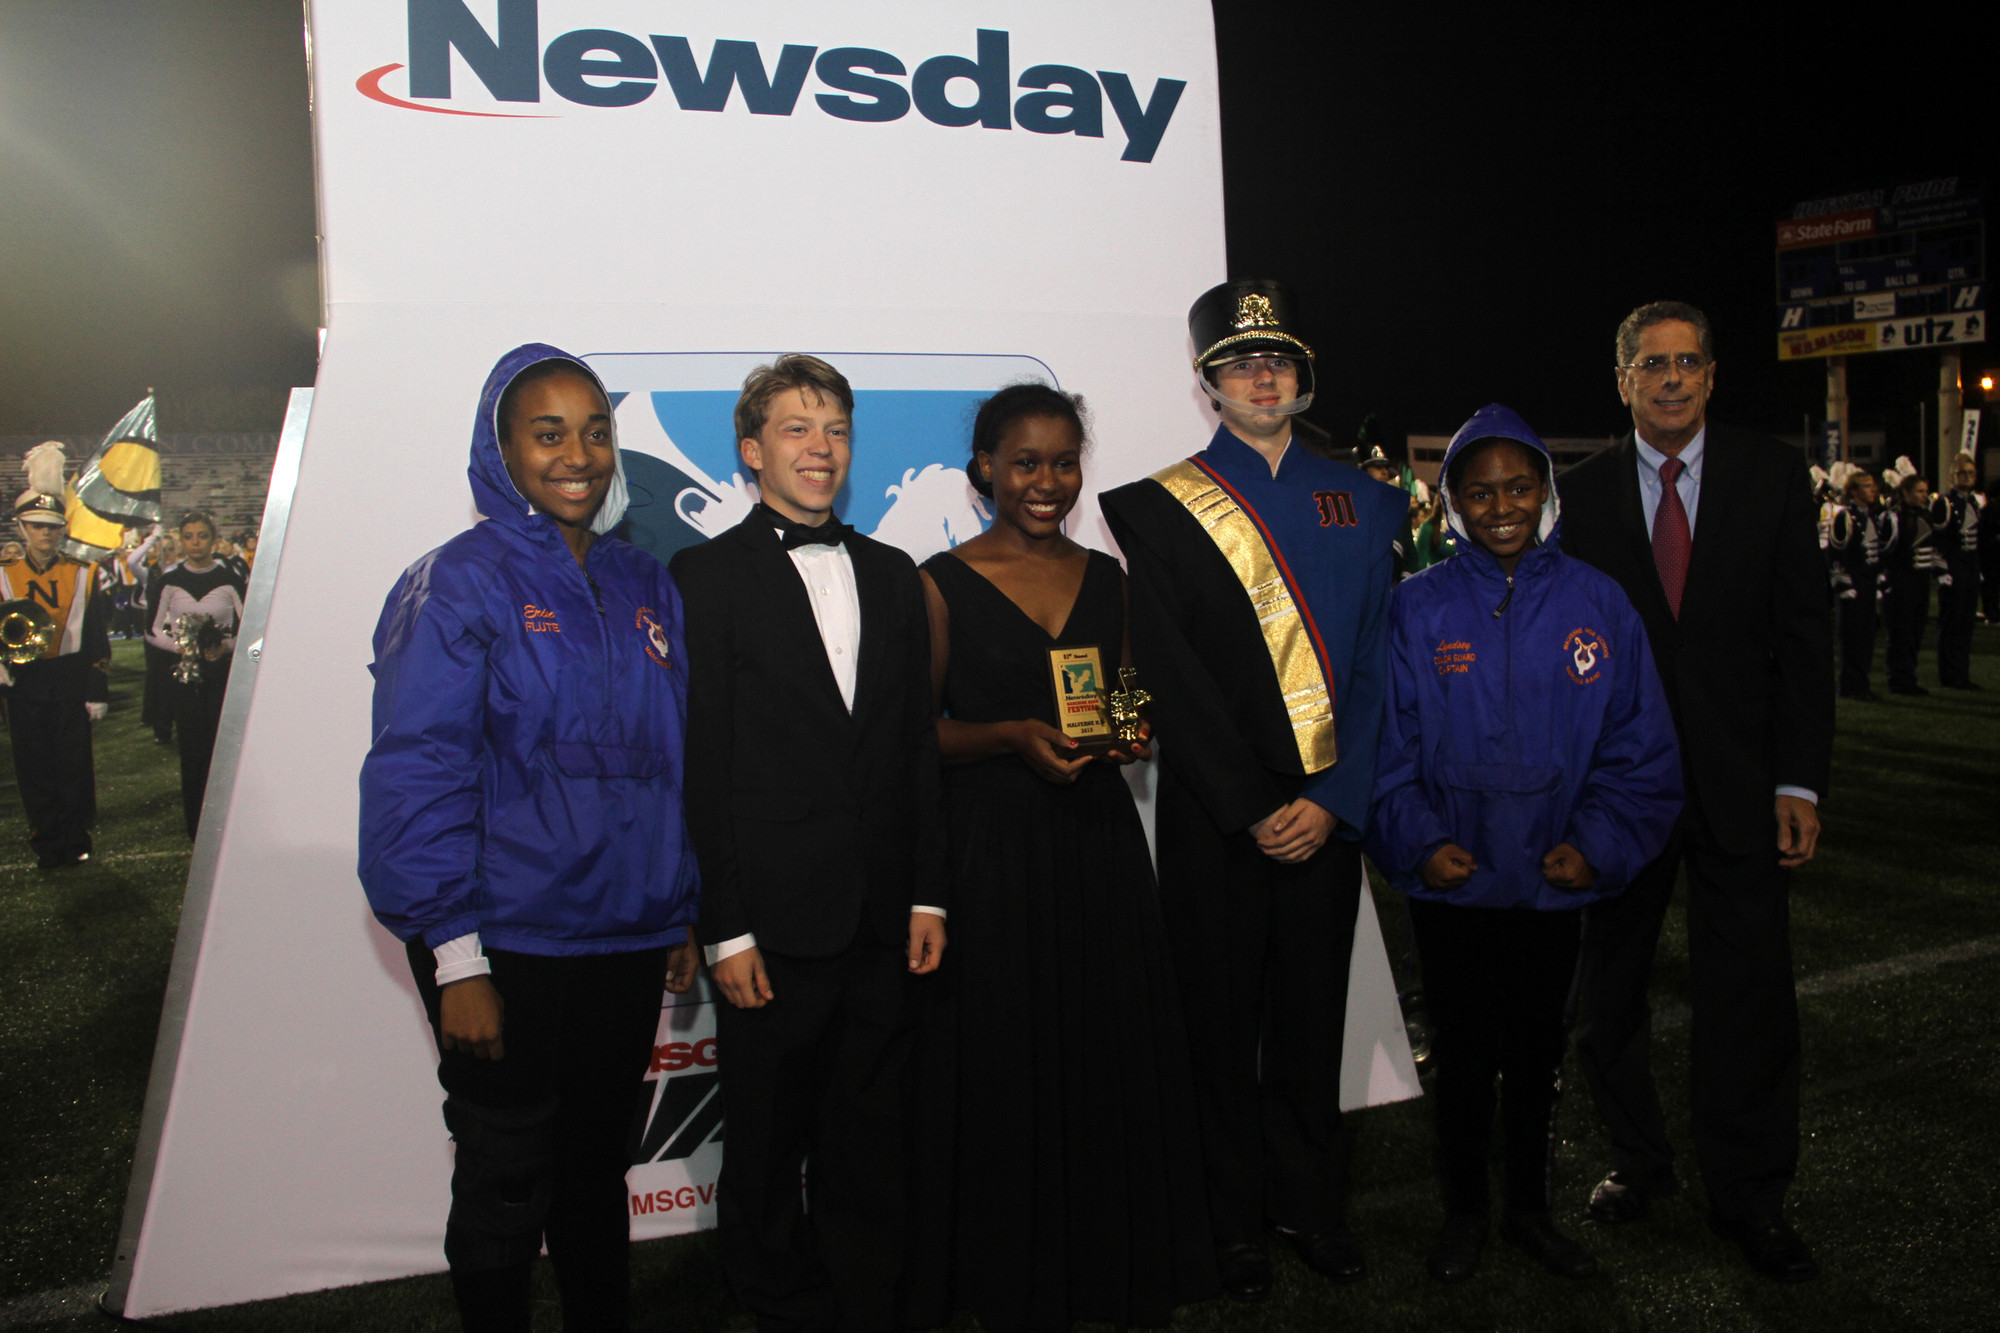 Drum Majors and Color Guard captains of the Malverne High Marching Band accepted their honorary plaque.